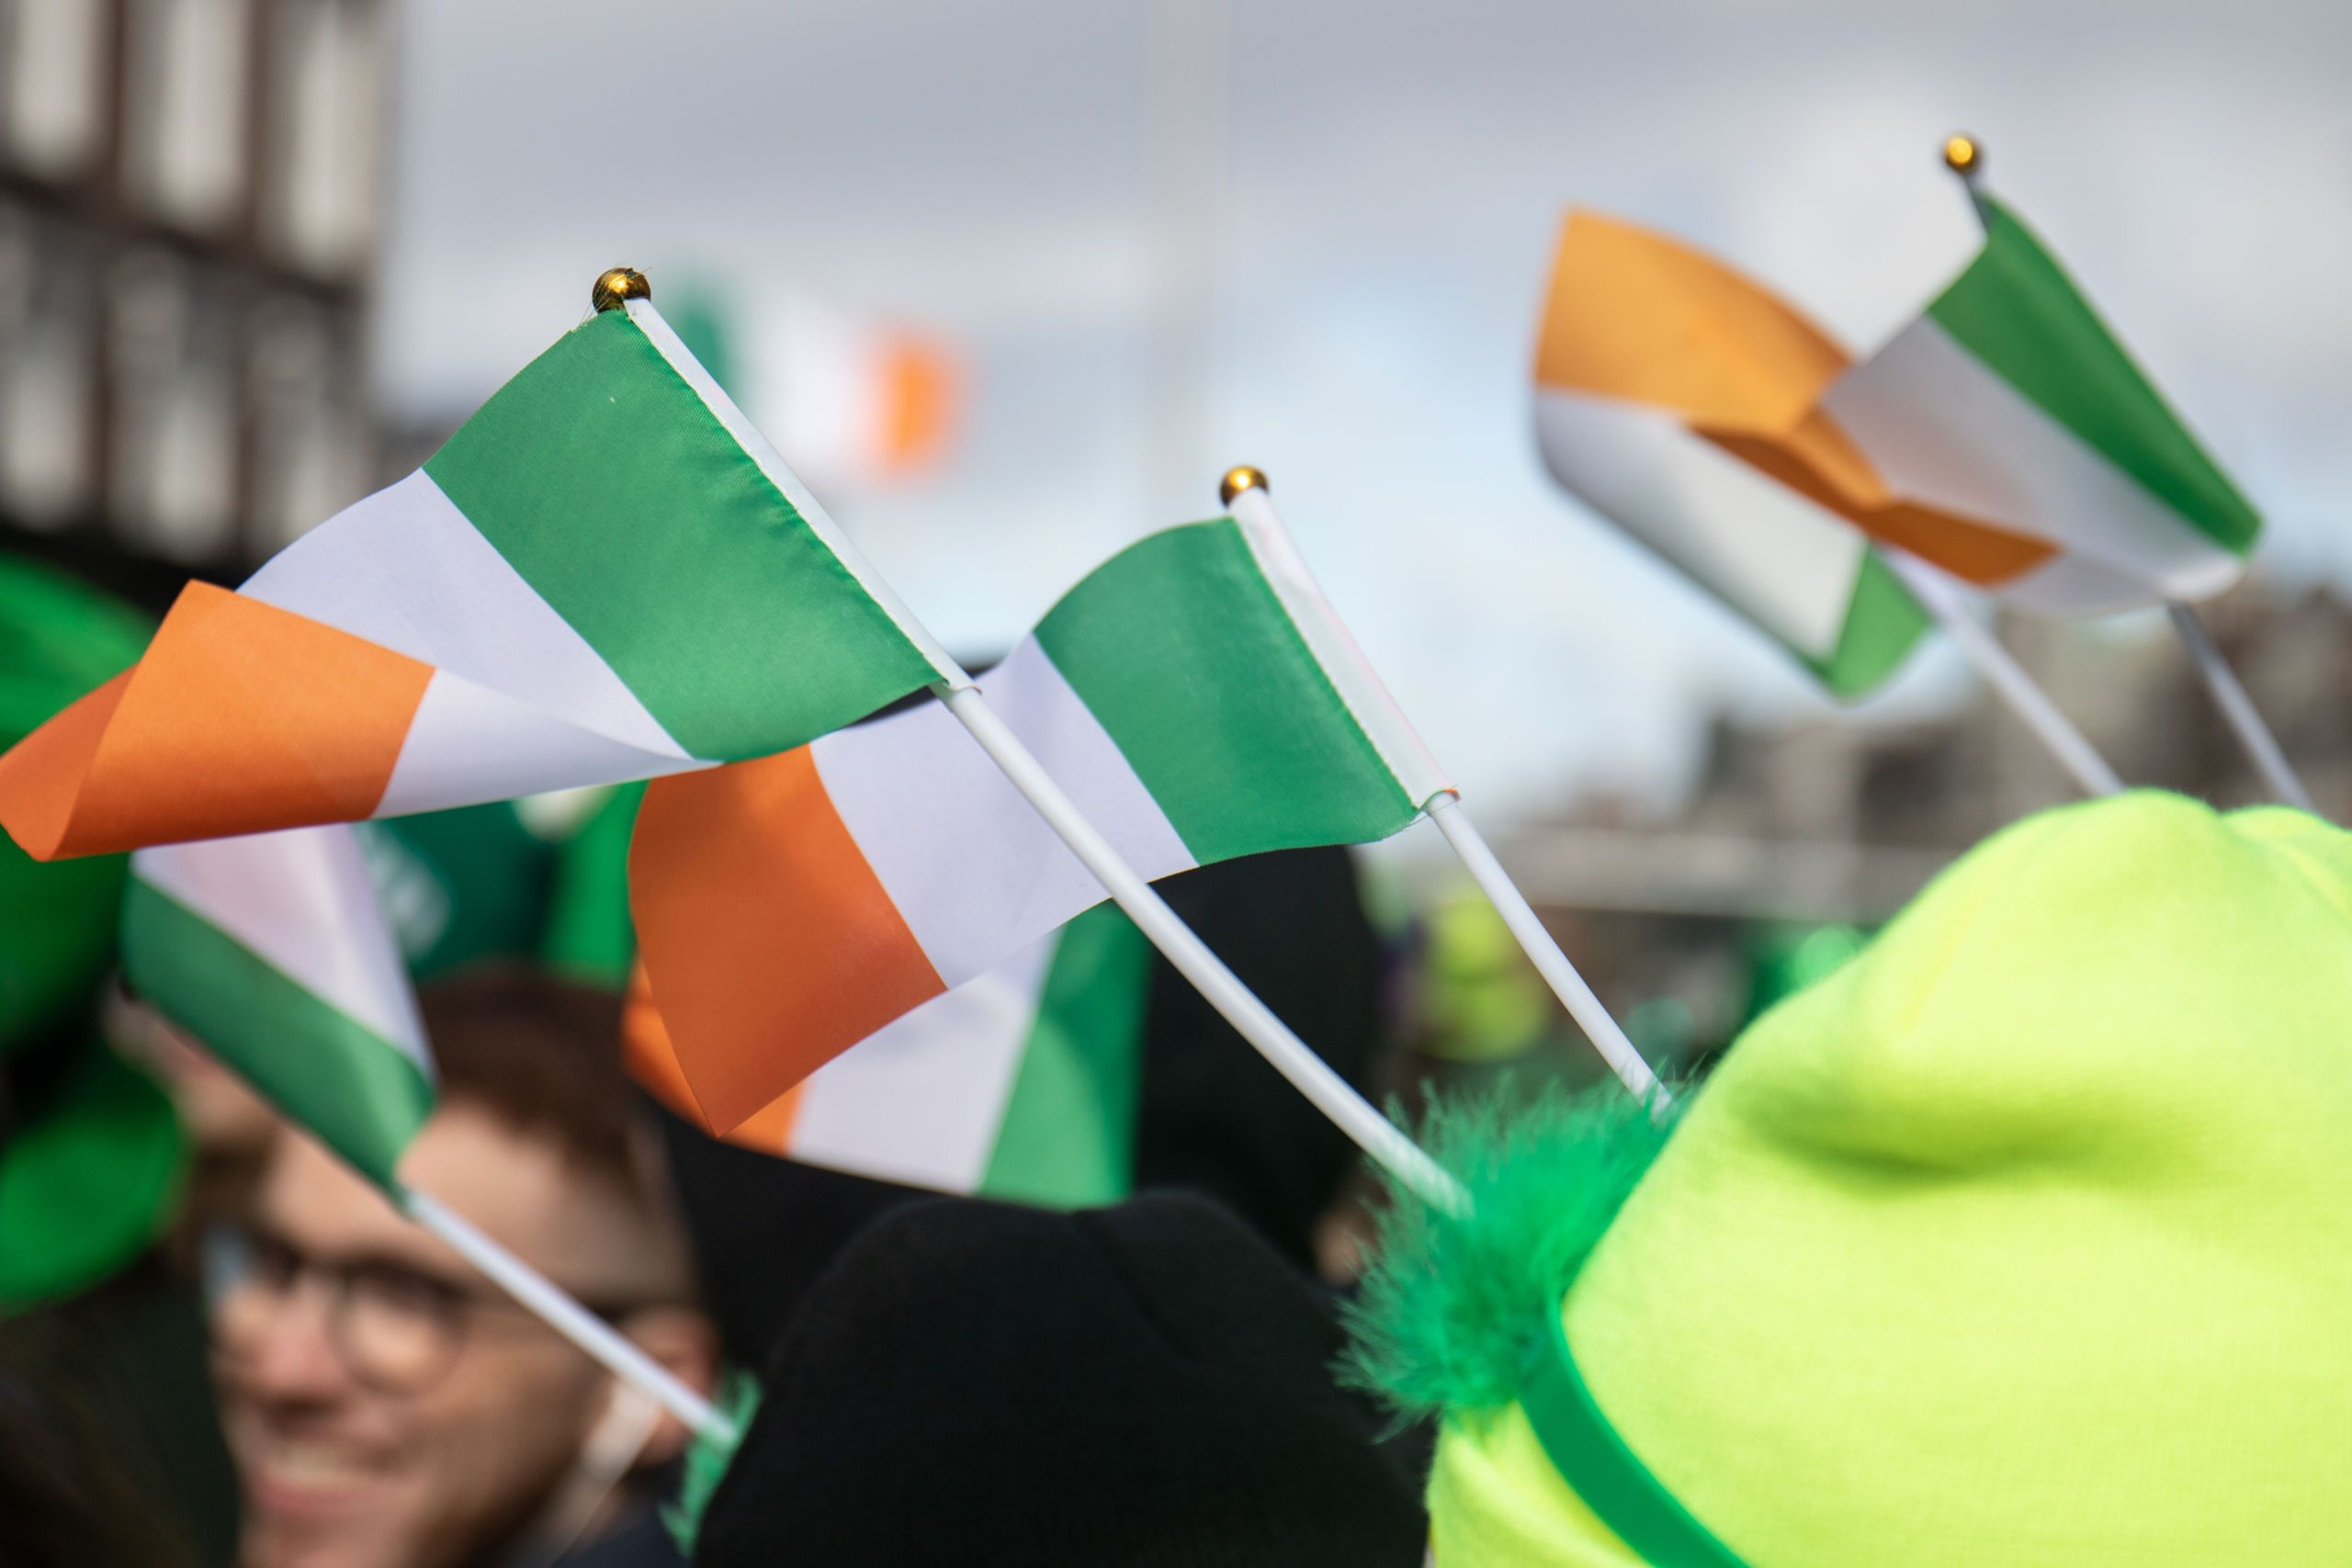 Dublin St. Patrick's Day canceled